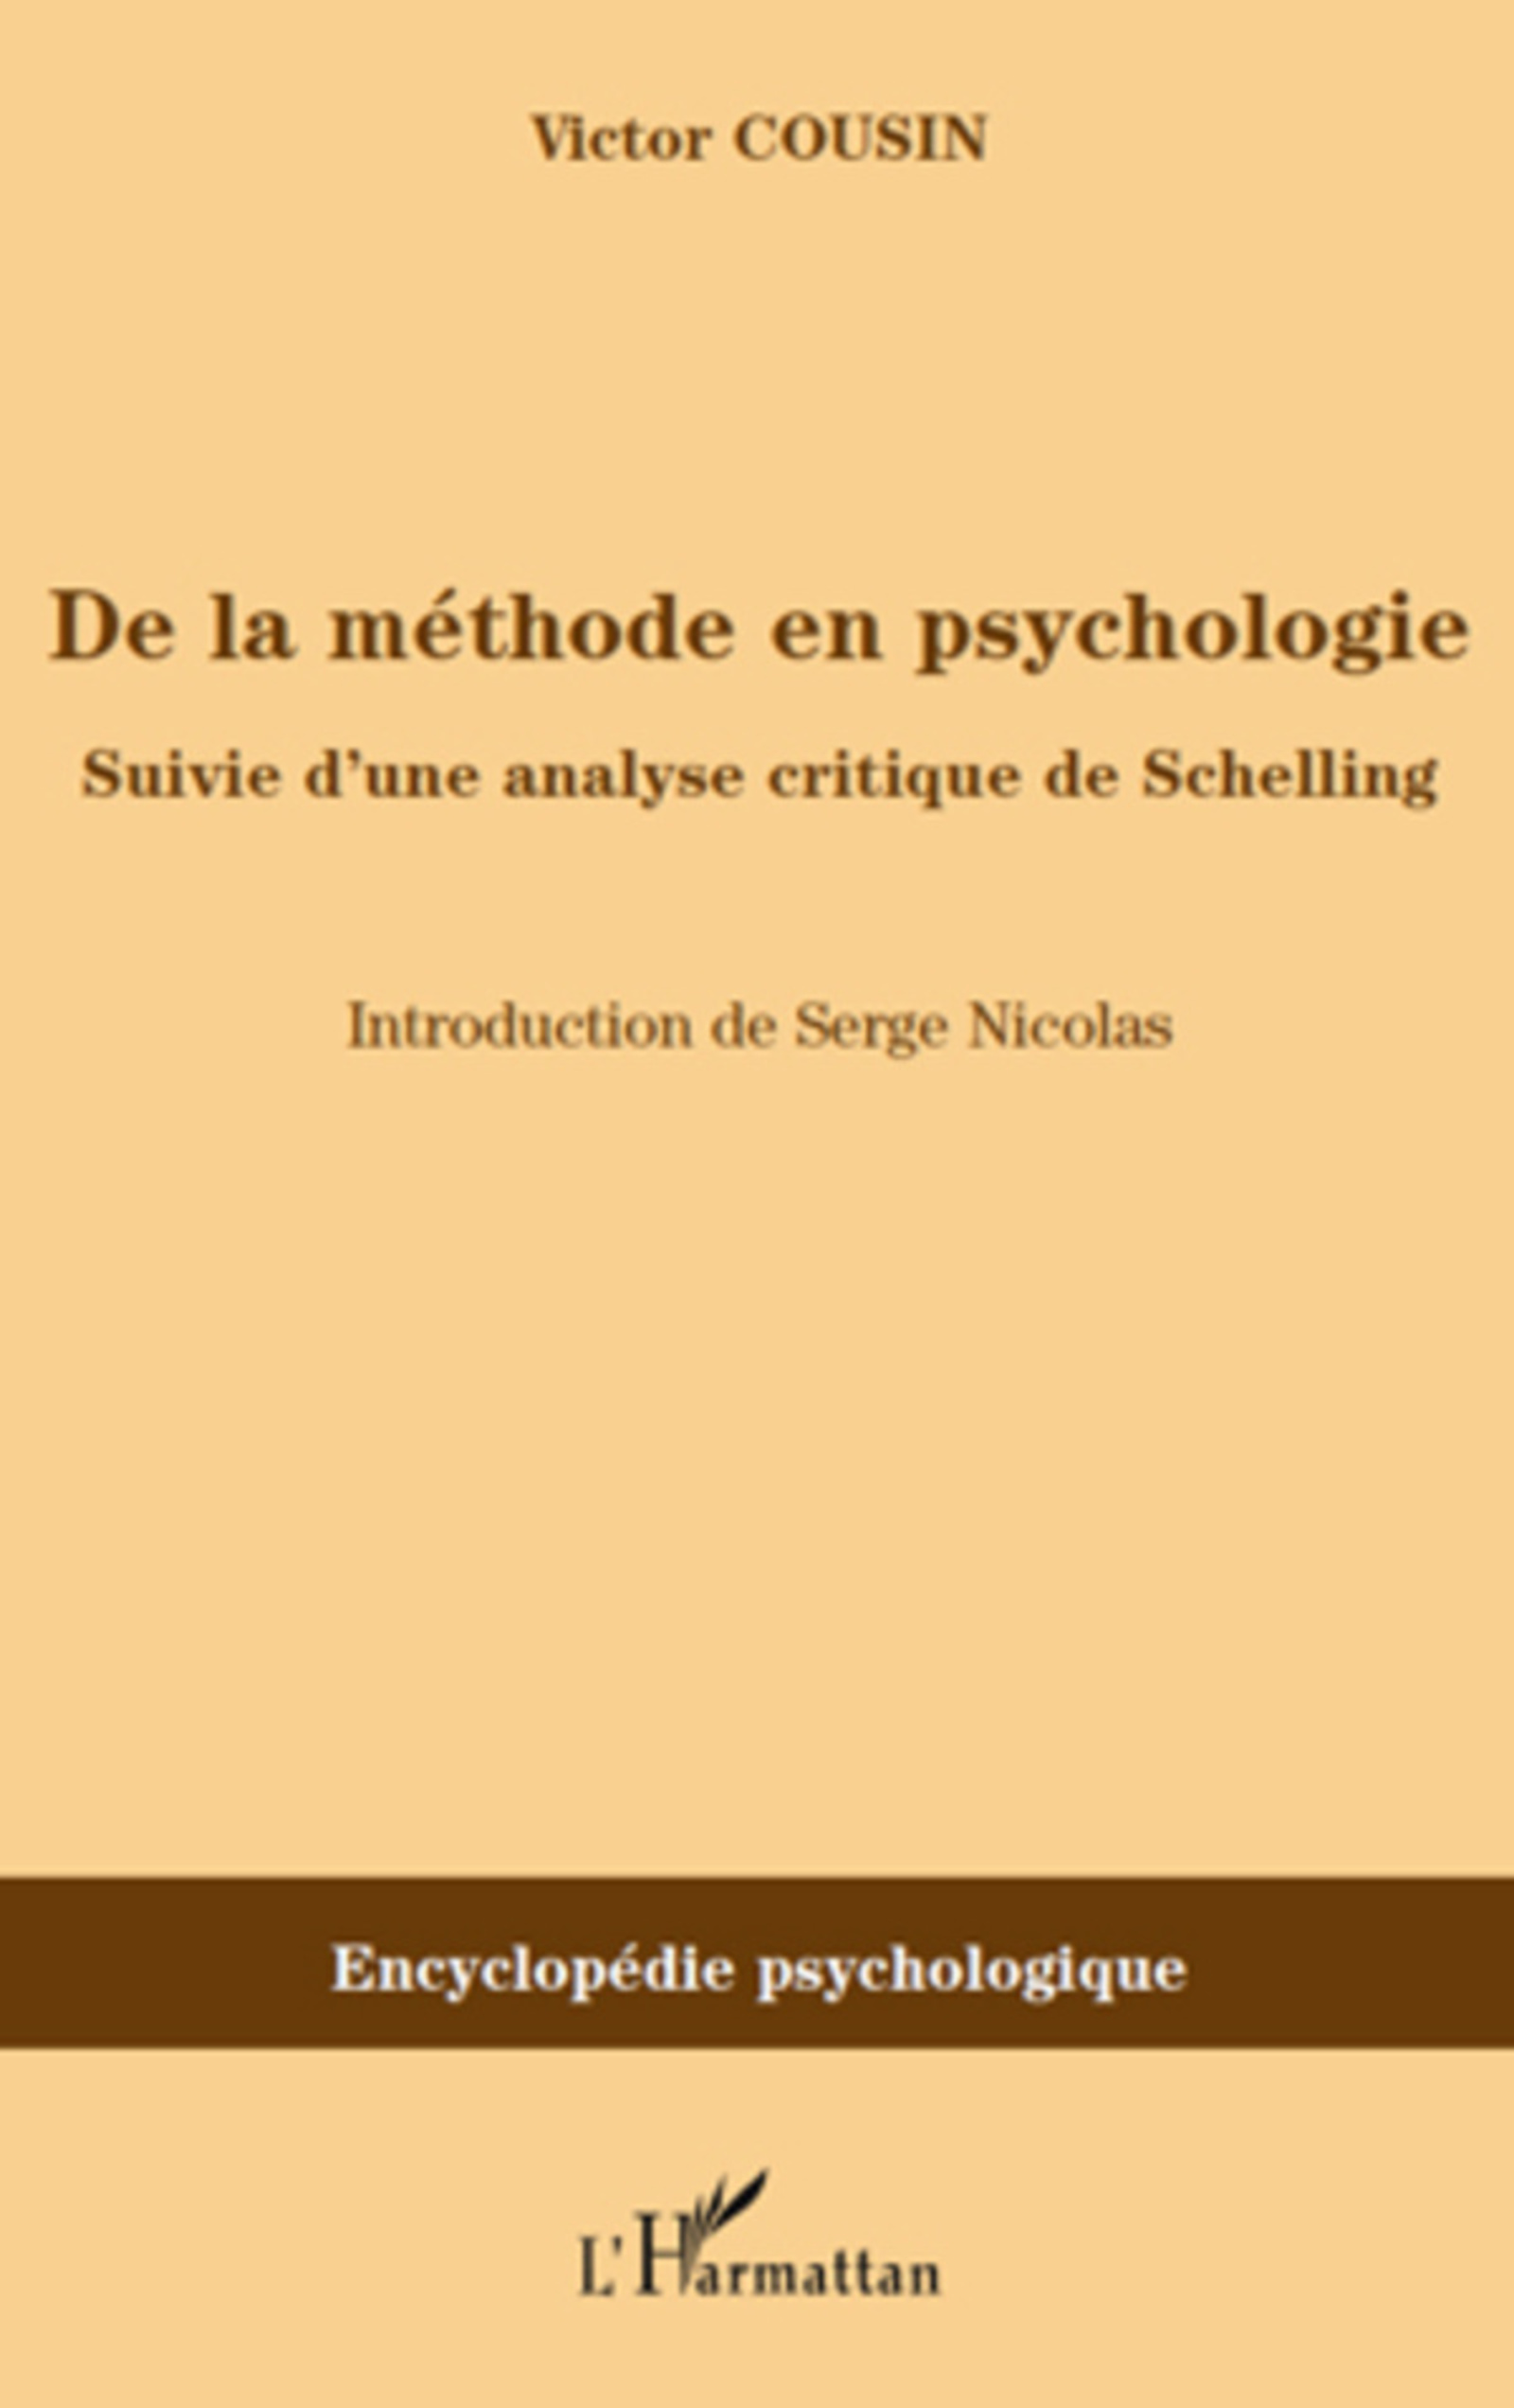 De la méthode en psychologie